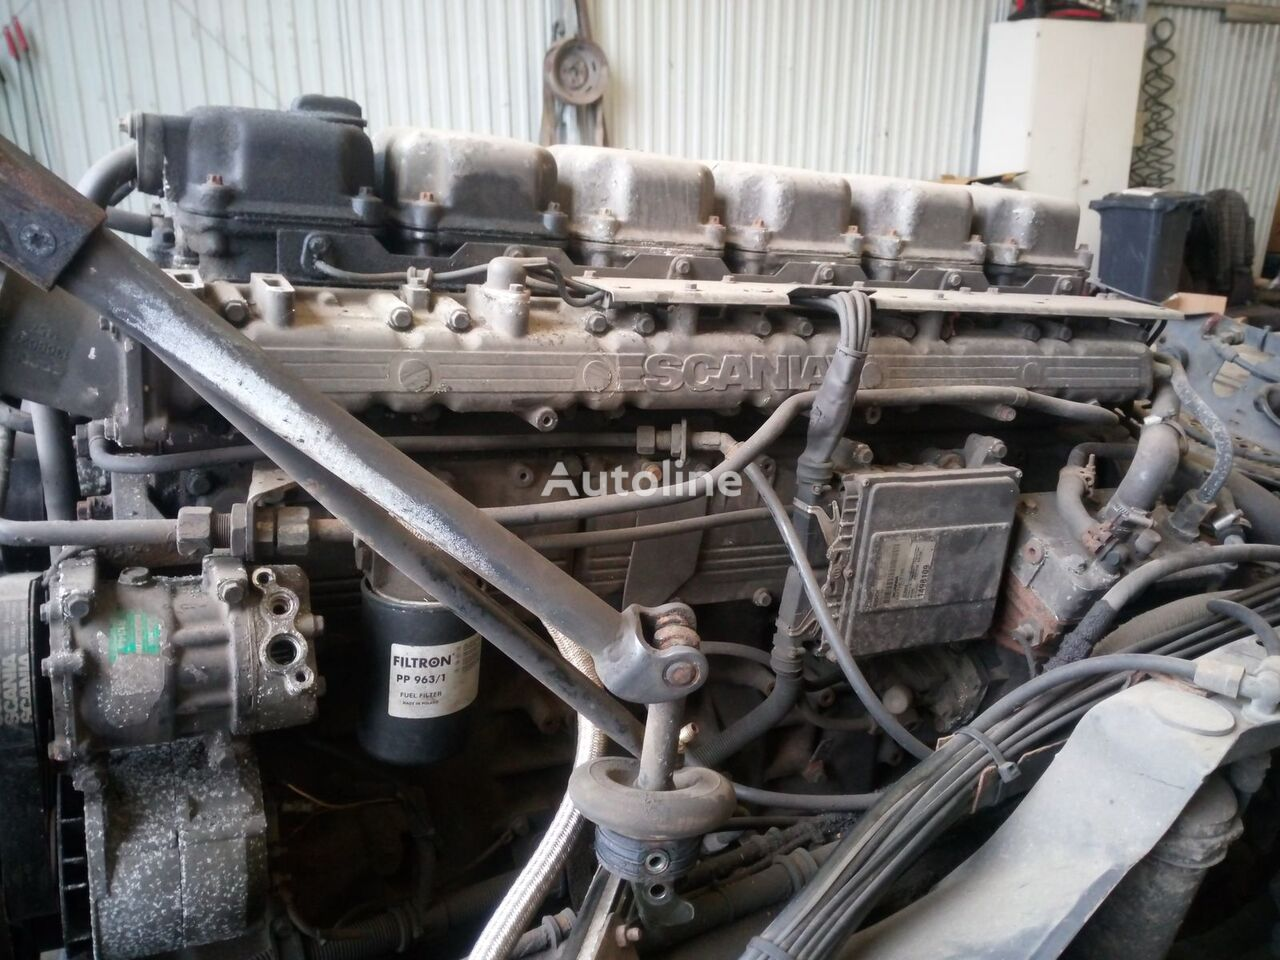 SCANIA DC1104 L01 engine for SCANIA 114 truck